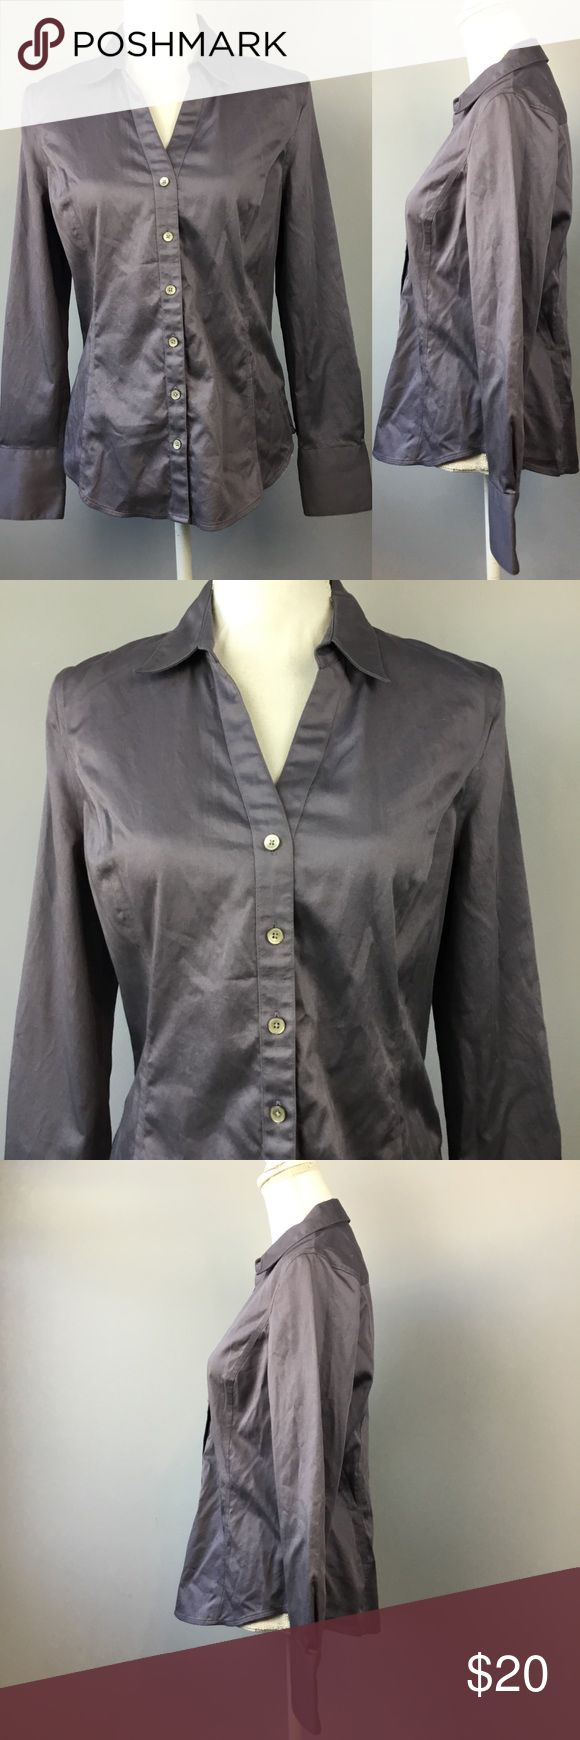 """Calvin Klein Button Down Long Sleeve Top Medium Calvin Klein Fitted Button Down Long Sleeve Top Womens Medium Non Iron Shirt  Measurements are laying flat •Underarm to underarm 19"""" •Length 22"""" from shoulder to hem Please check out my other items for more sizes and styles! Calvin Klein Tops Button Down Shirts"""